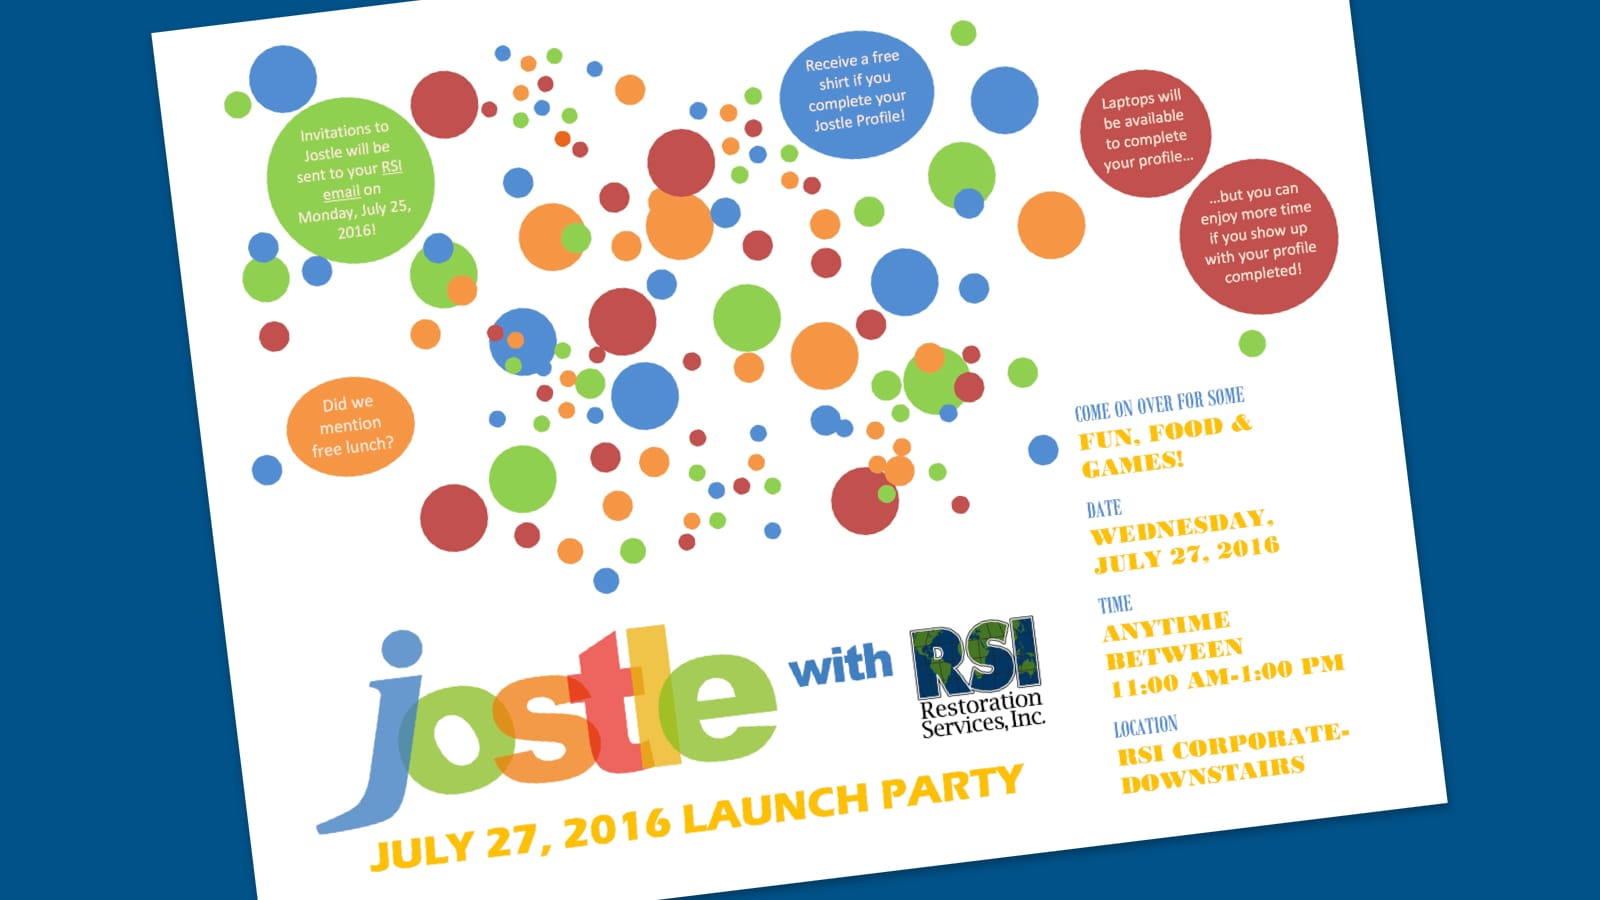 RSI's invitation to their Jostle Launch Party